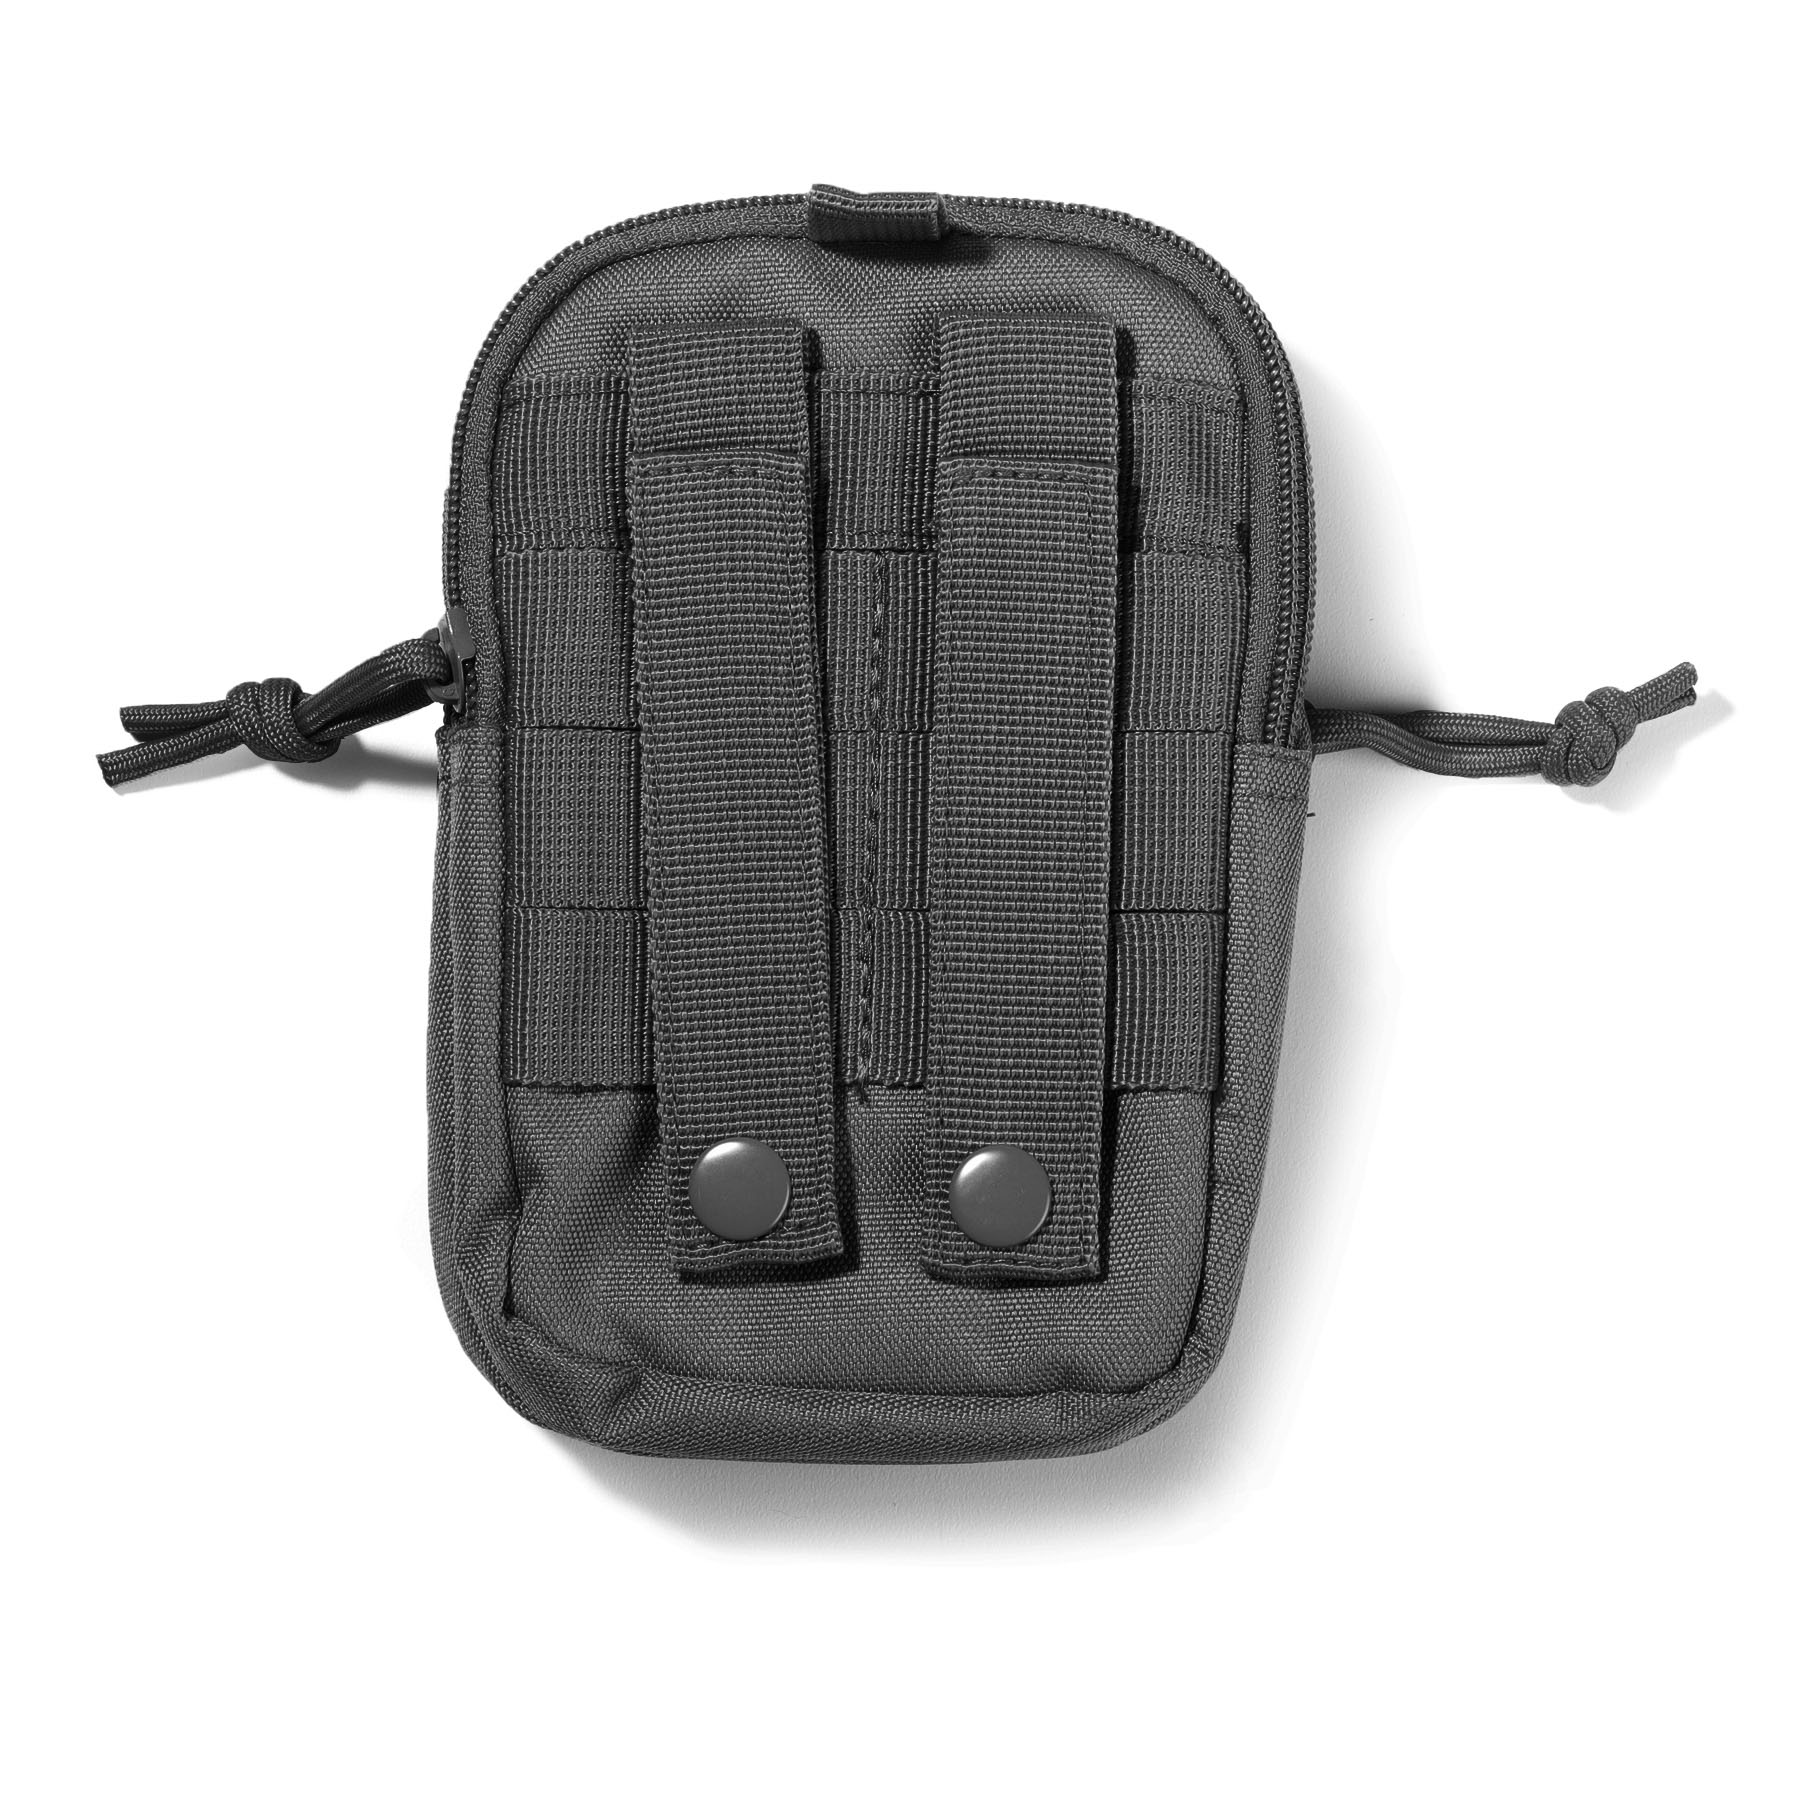 Fox Outdoor Deluxe Modular Tech Pouch